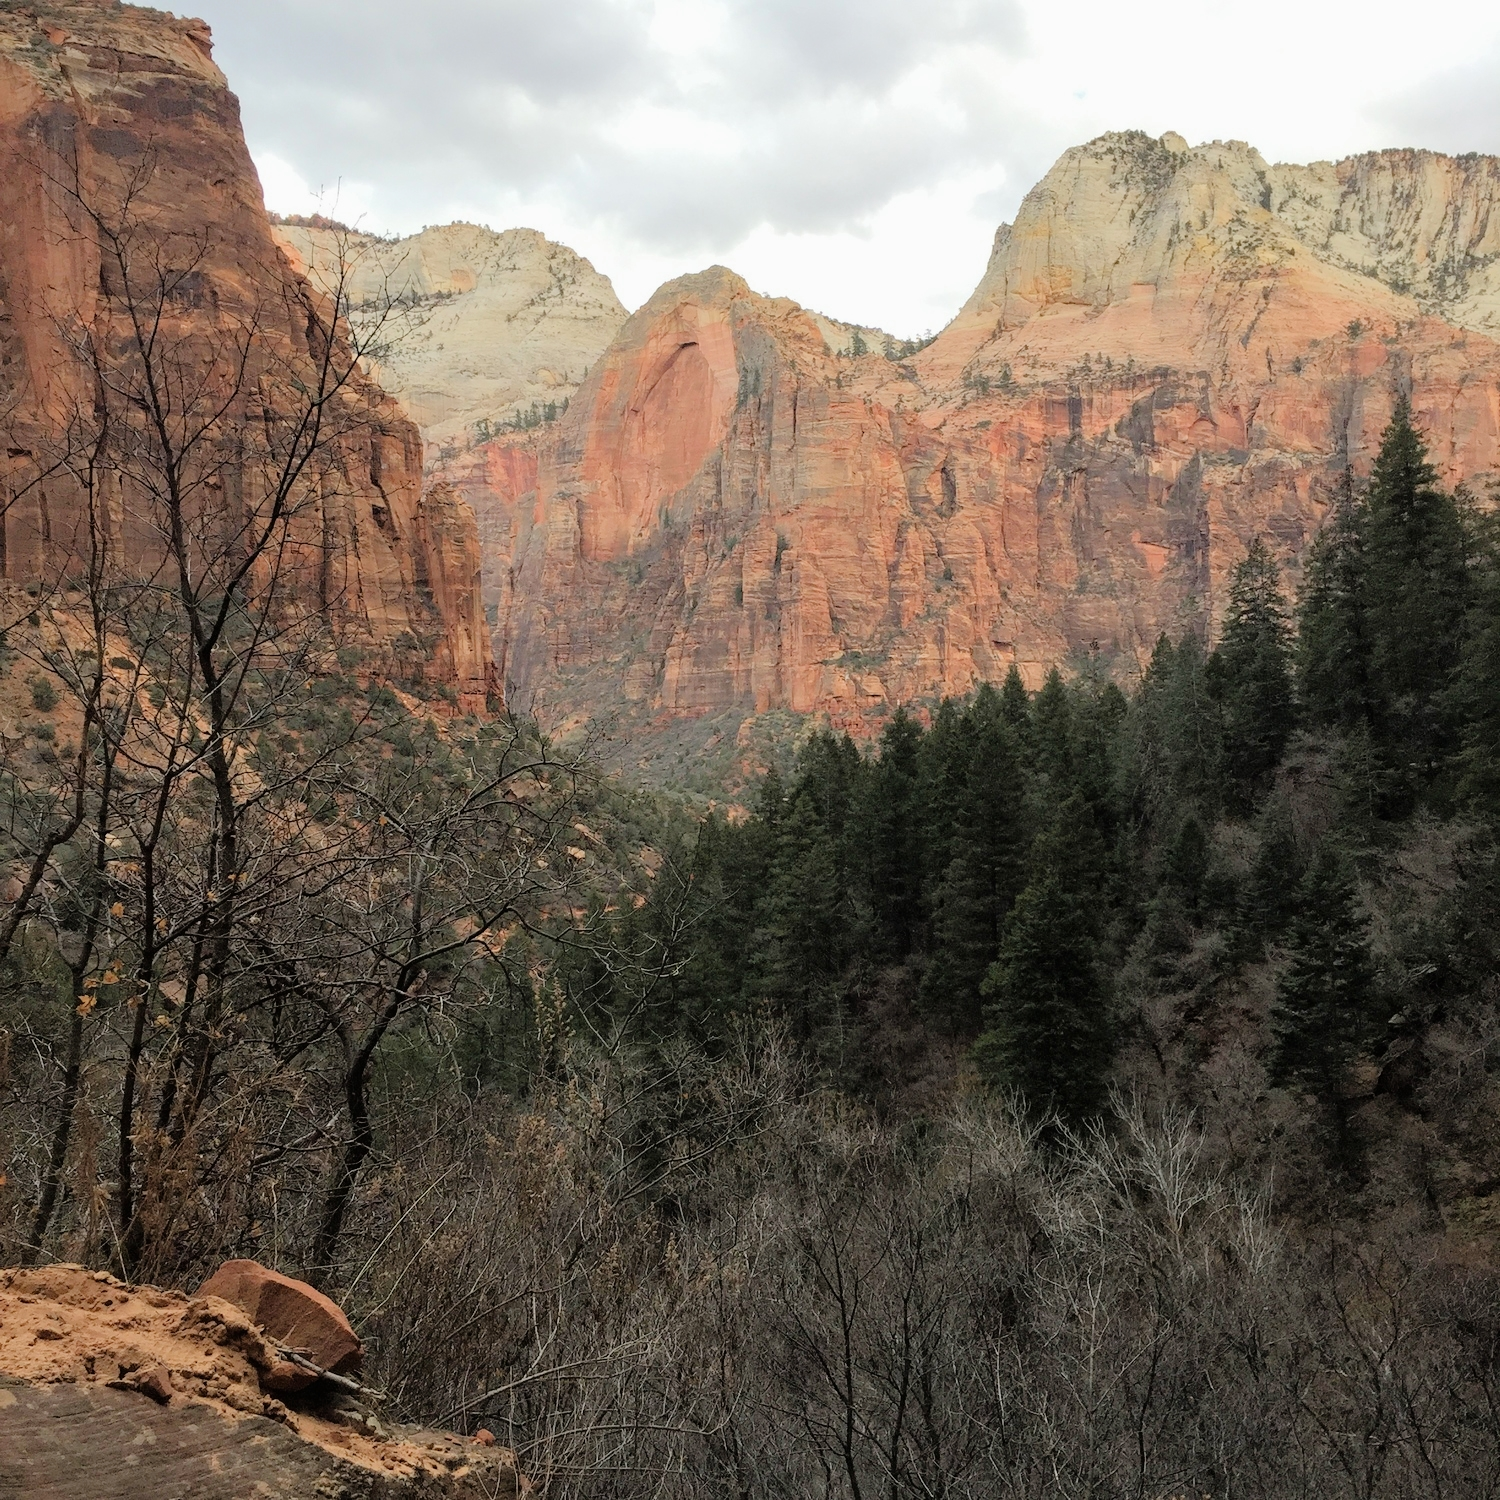 View from Emerald Pools Trail